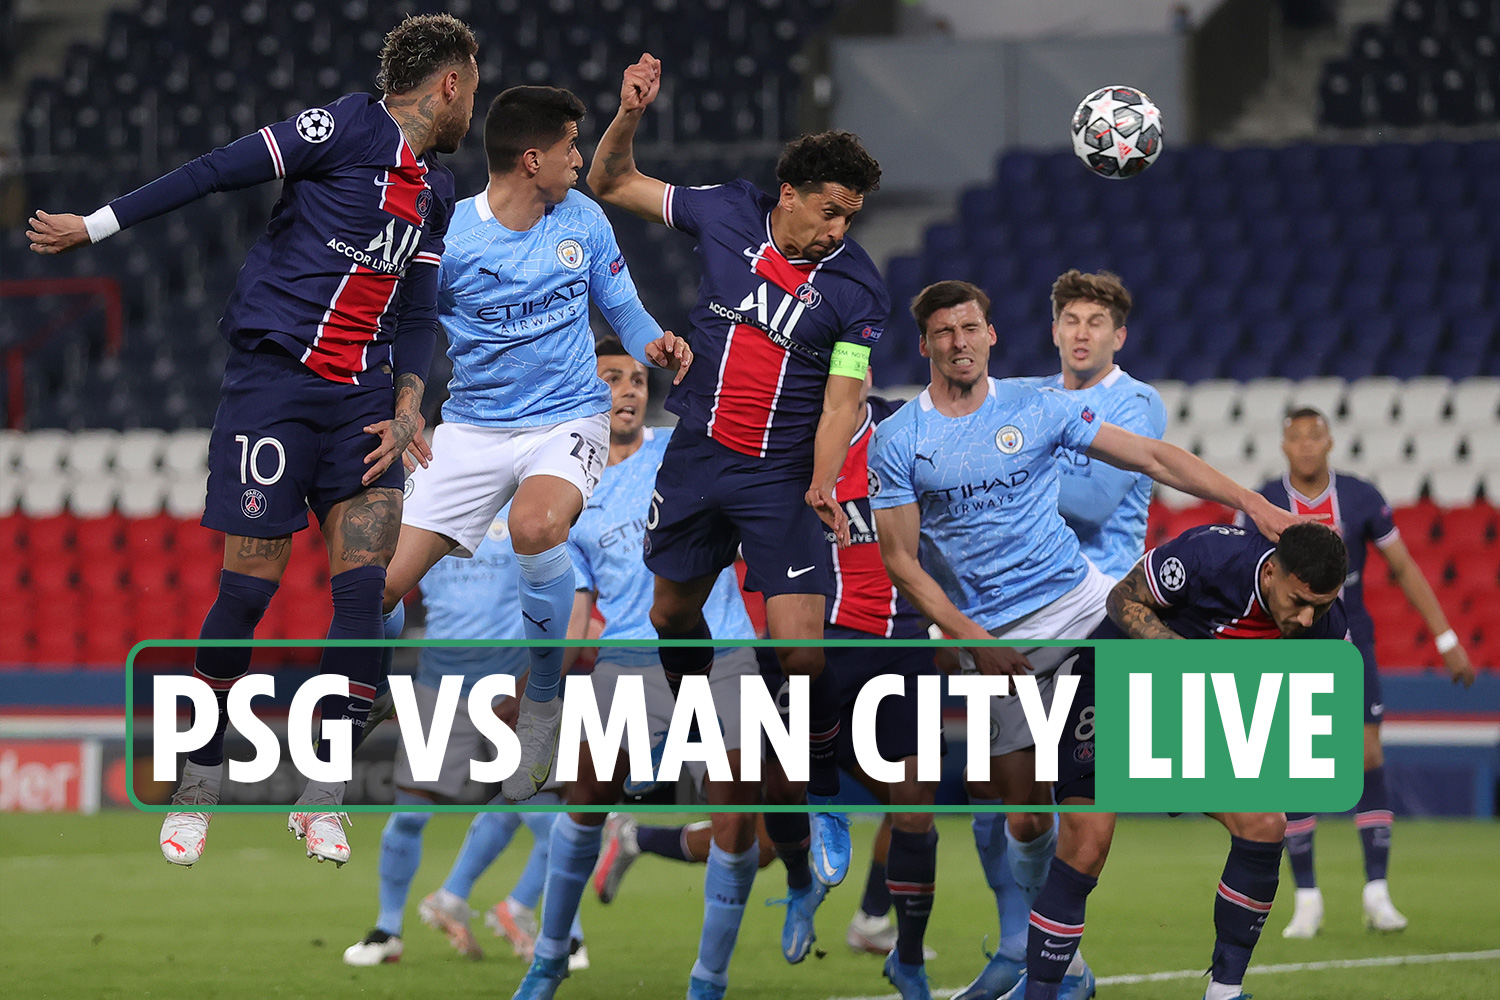 PSG vs Man City LIVE: Stream FREE, score, TV channel as Marquinhos powers  in opener – Champions League latest updates - 247 News Around The World